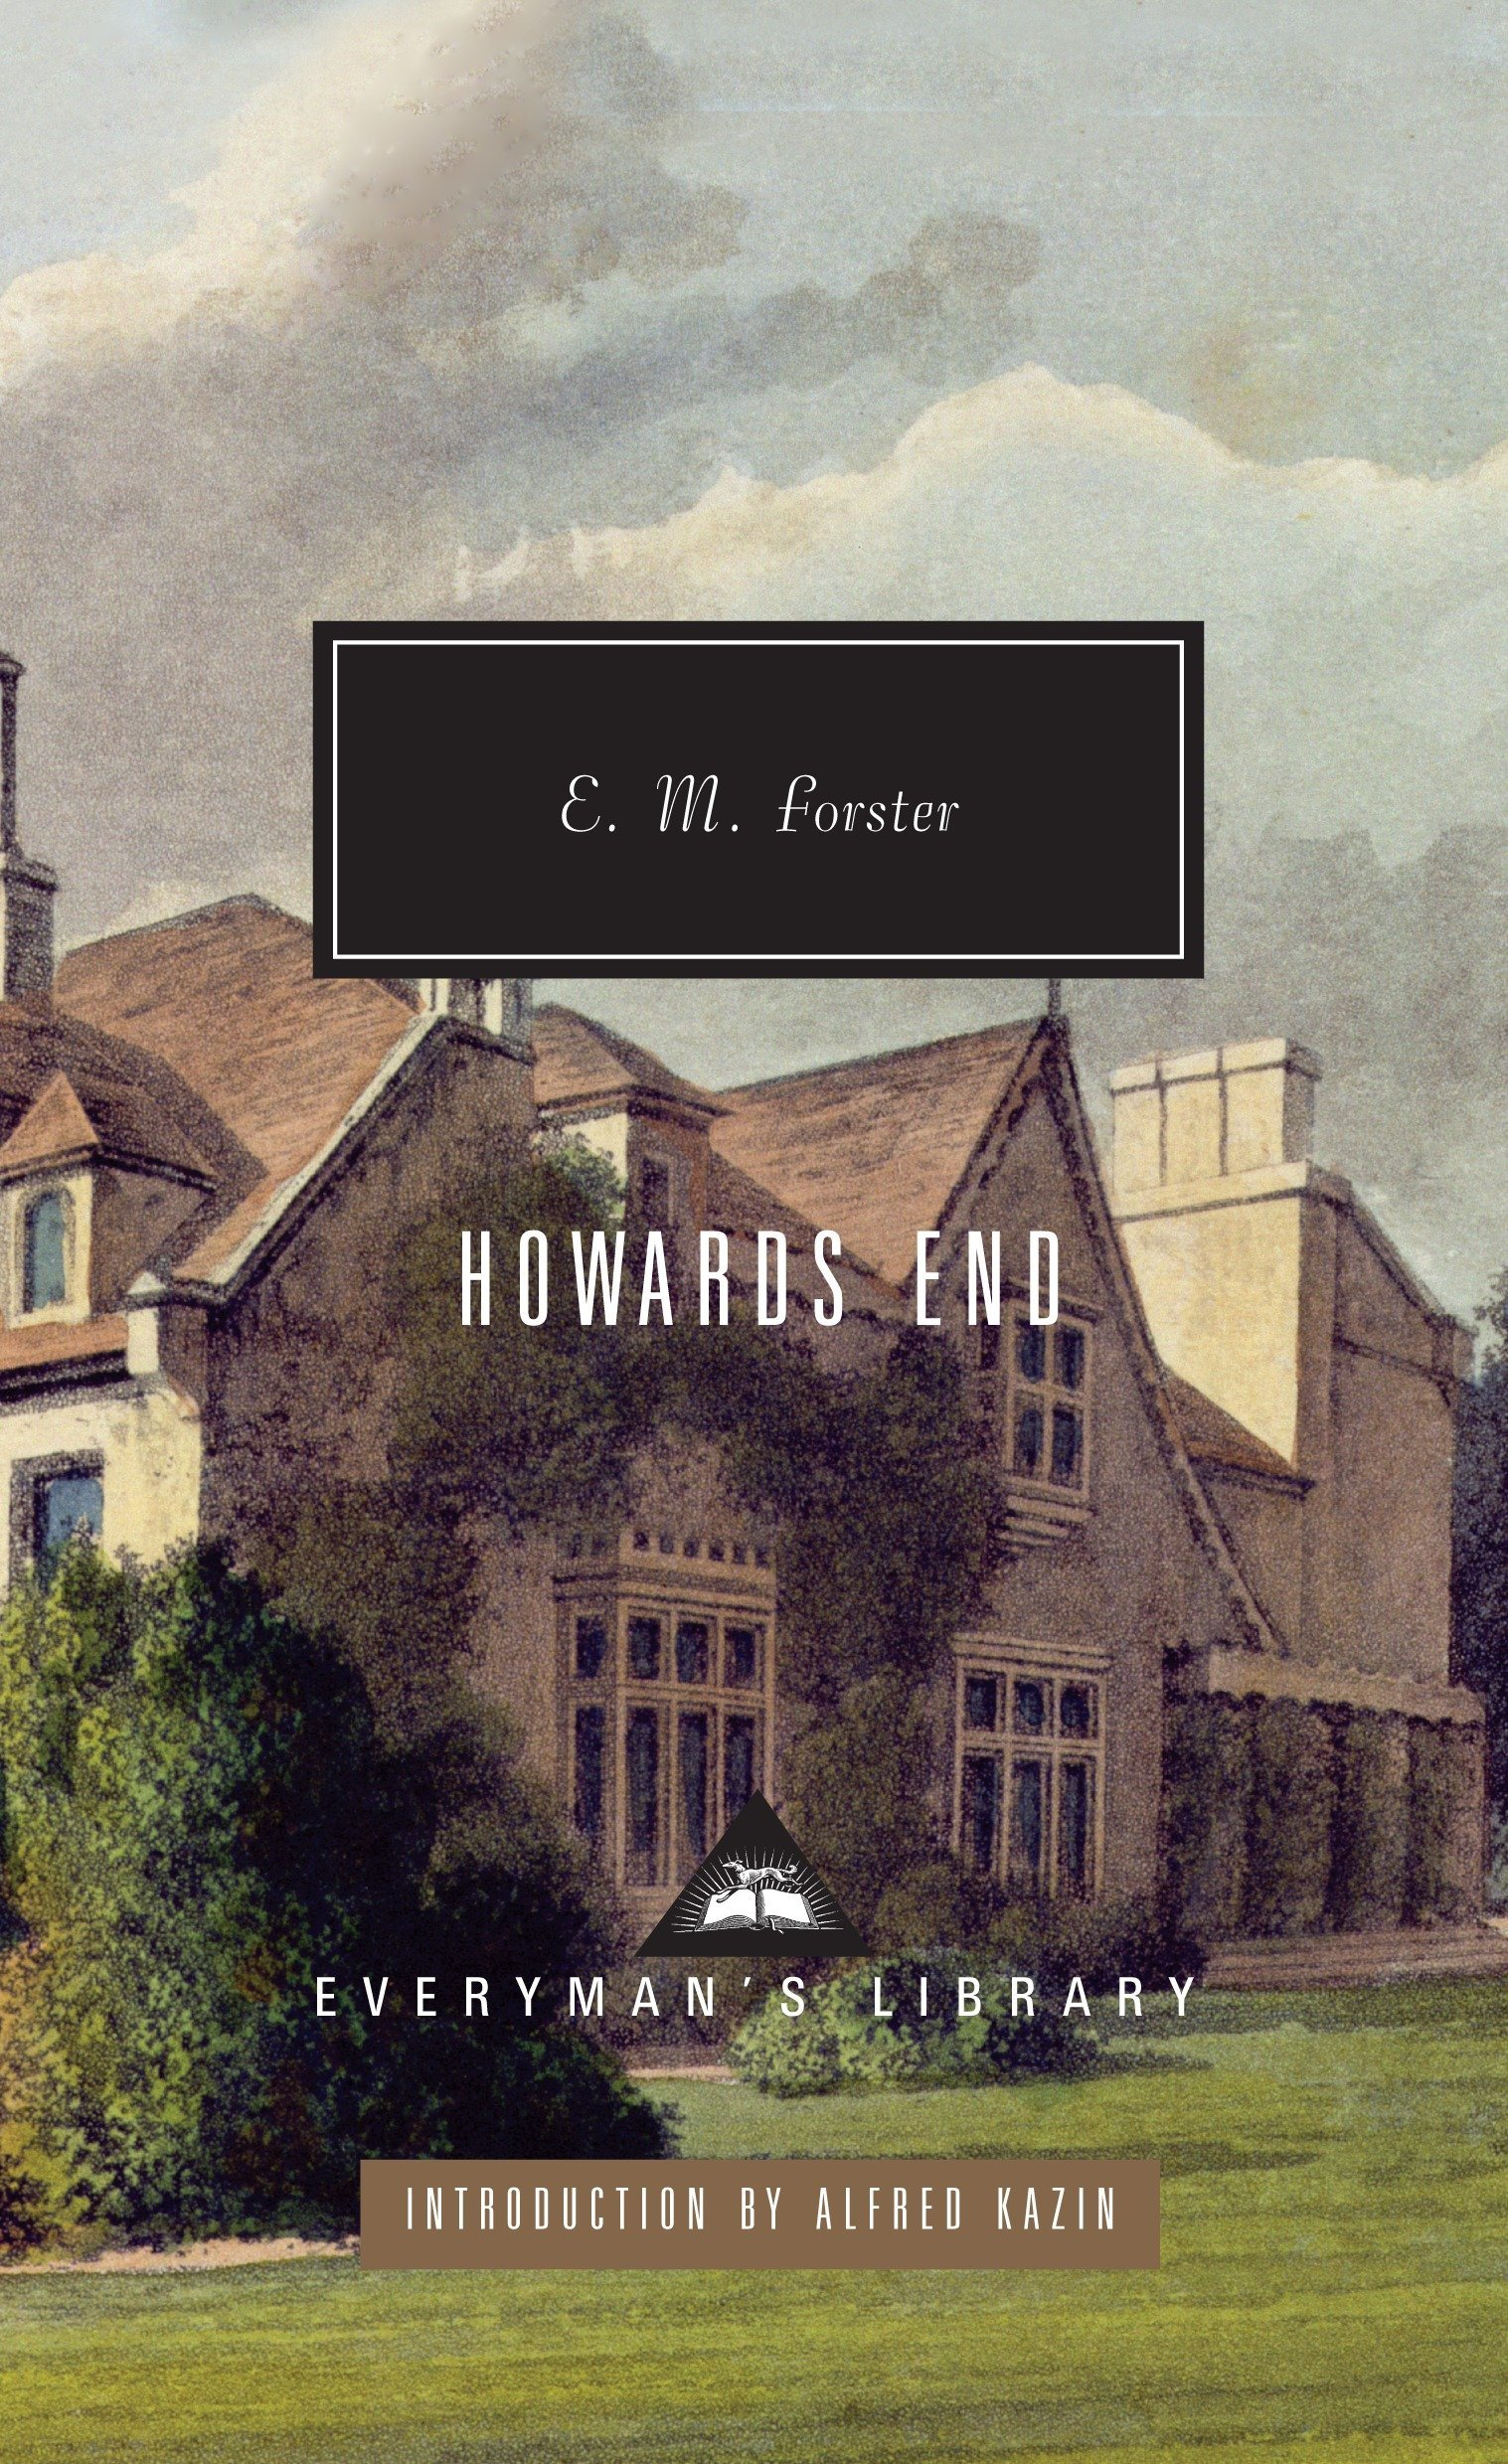 Howards End (Everymans Library): Amazon.es: E. M. Forster, Alfred Kazin: Libros en idiomas extranjeros